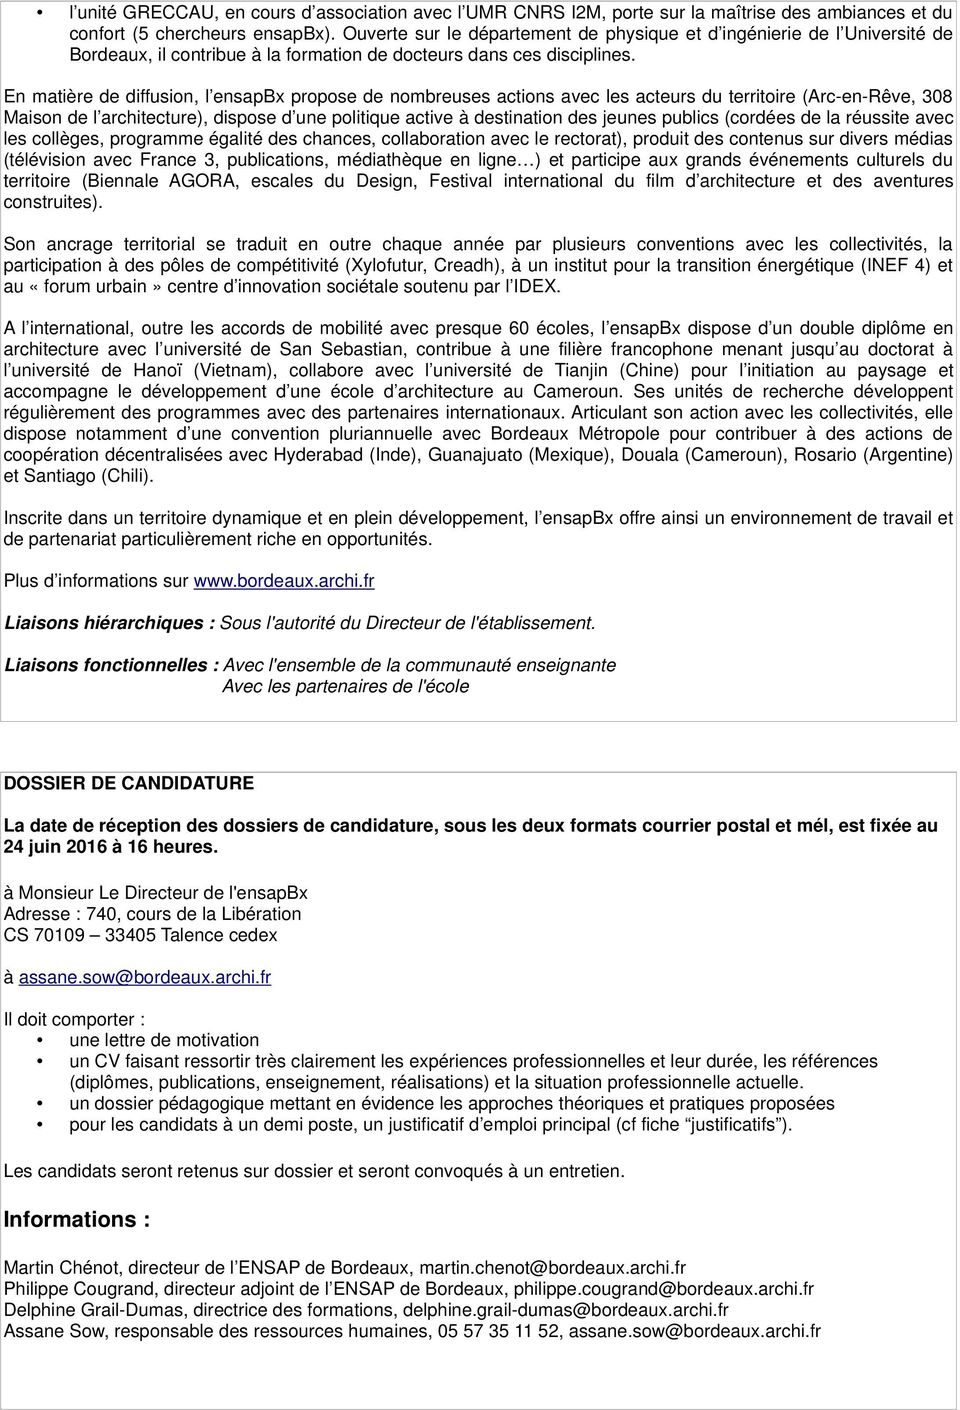 Fiche De Poste Recrutement Maitre Assistant Associe Ecole Nationale